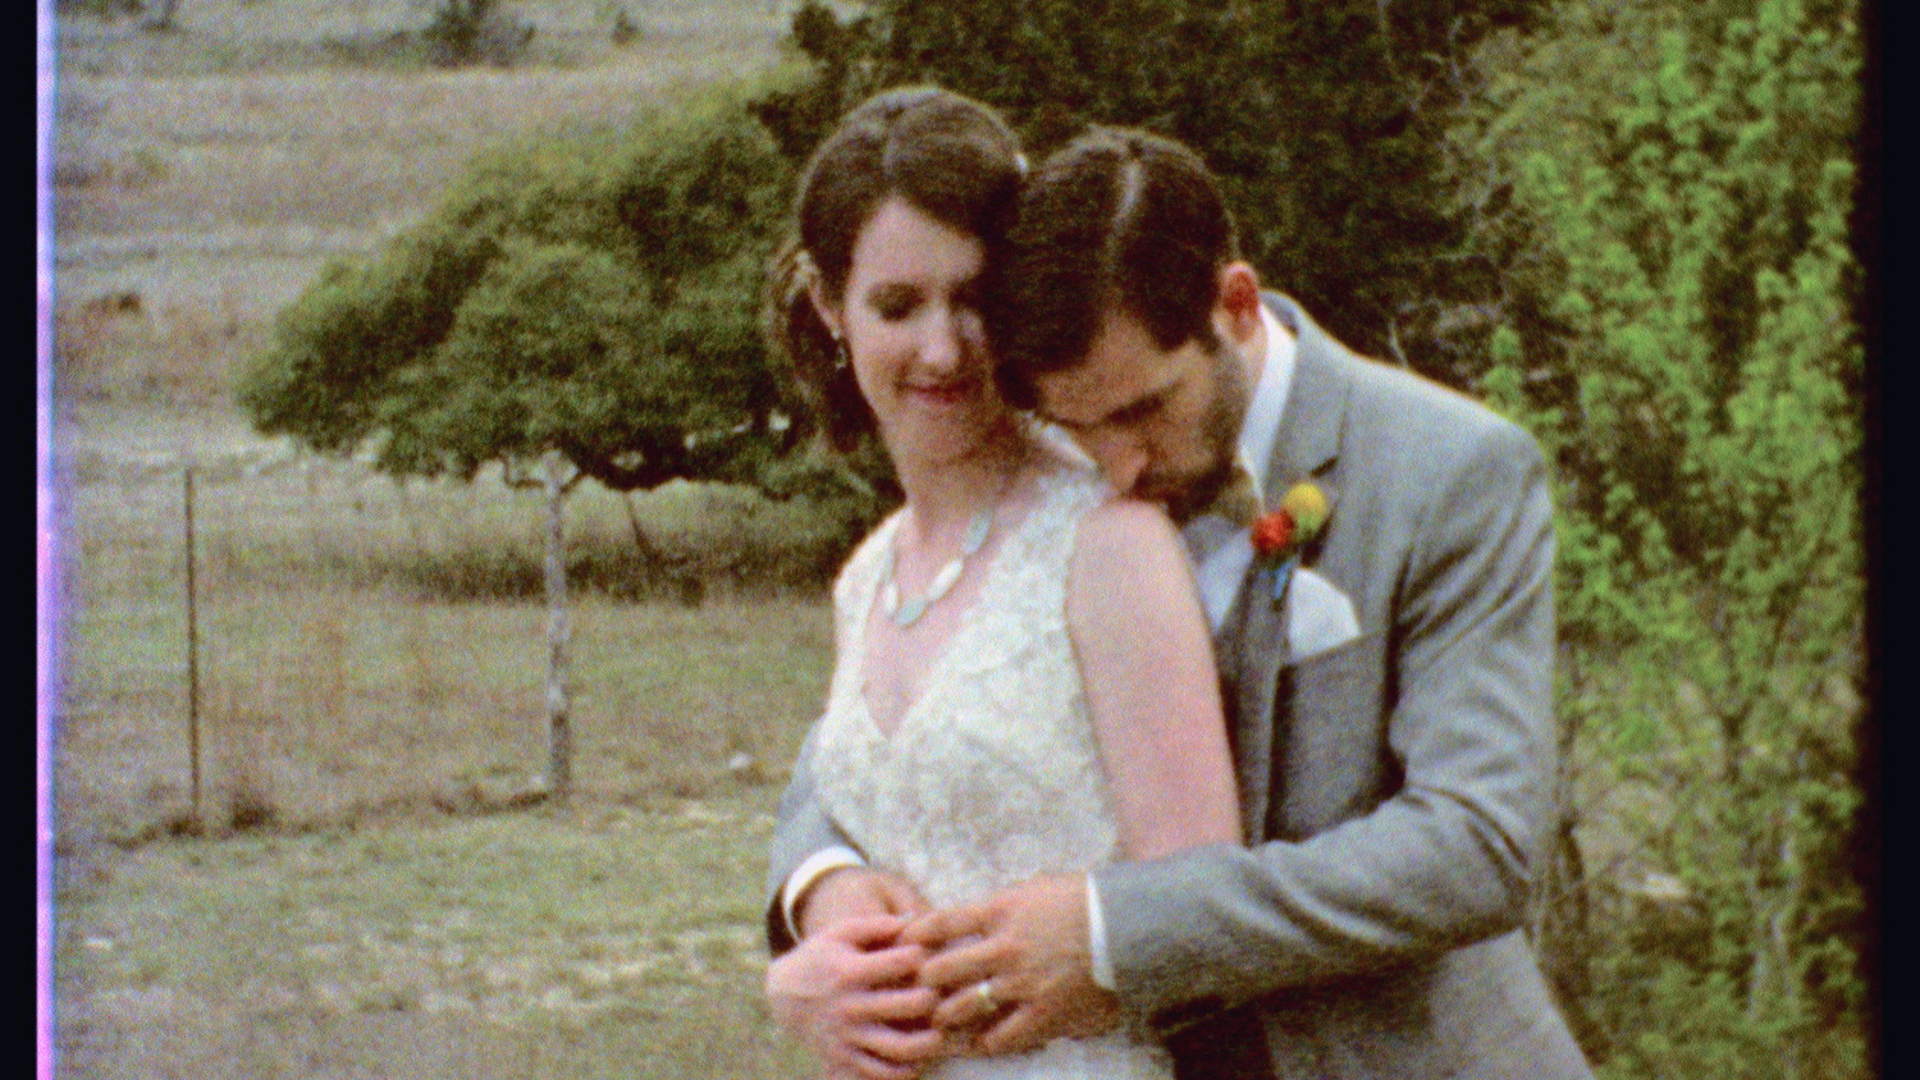 Erin & Adam's Super 8mm & HD Wedding Highlights at Red Corral Ranch